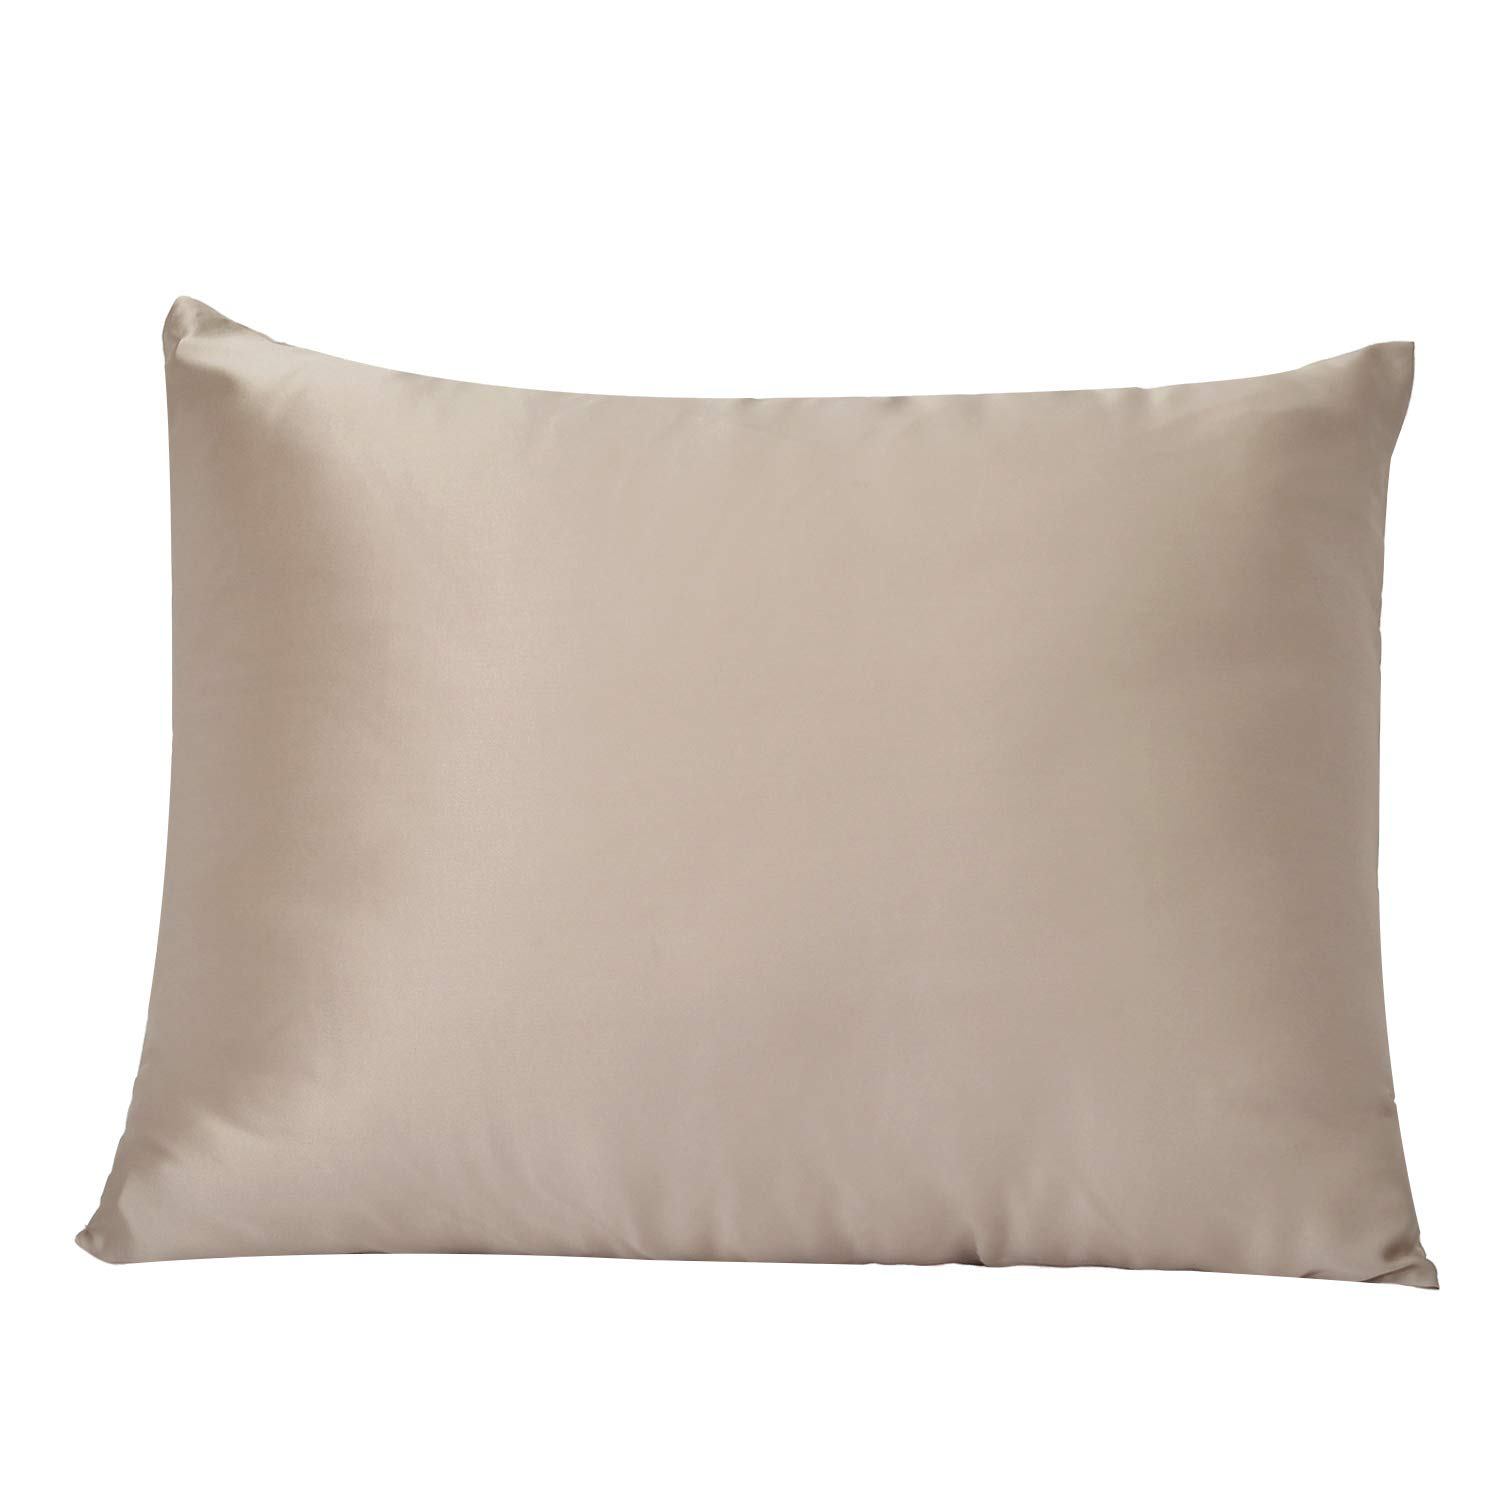 BIGHAS 100% Mulberry Silk Pillowcase for Hair and Skin with Hidden Zipper, Soft Breathable Natural Both Side 19 Momme Silk, 600 Thread Count (Camel, Standard 2026inches)